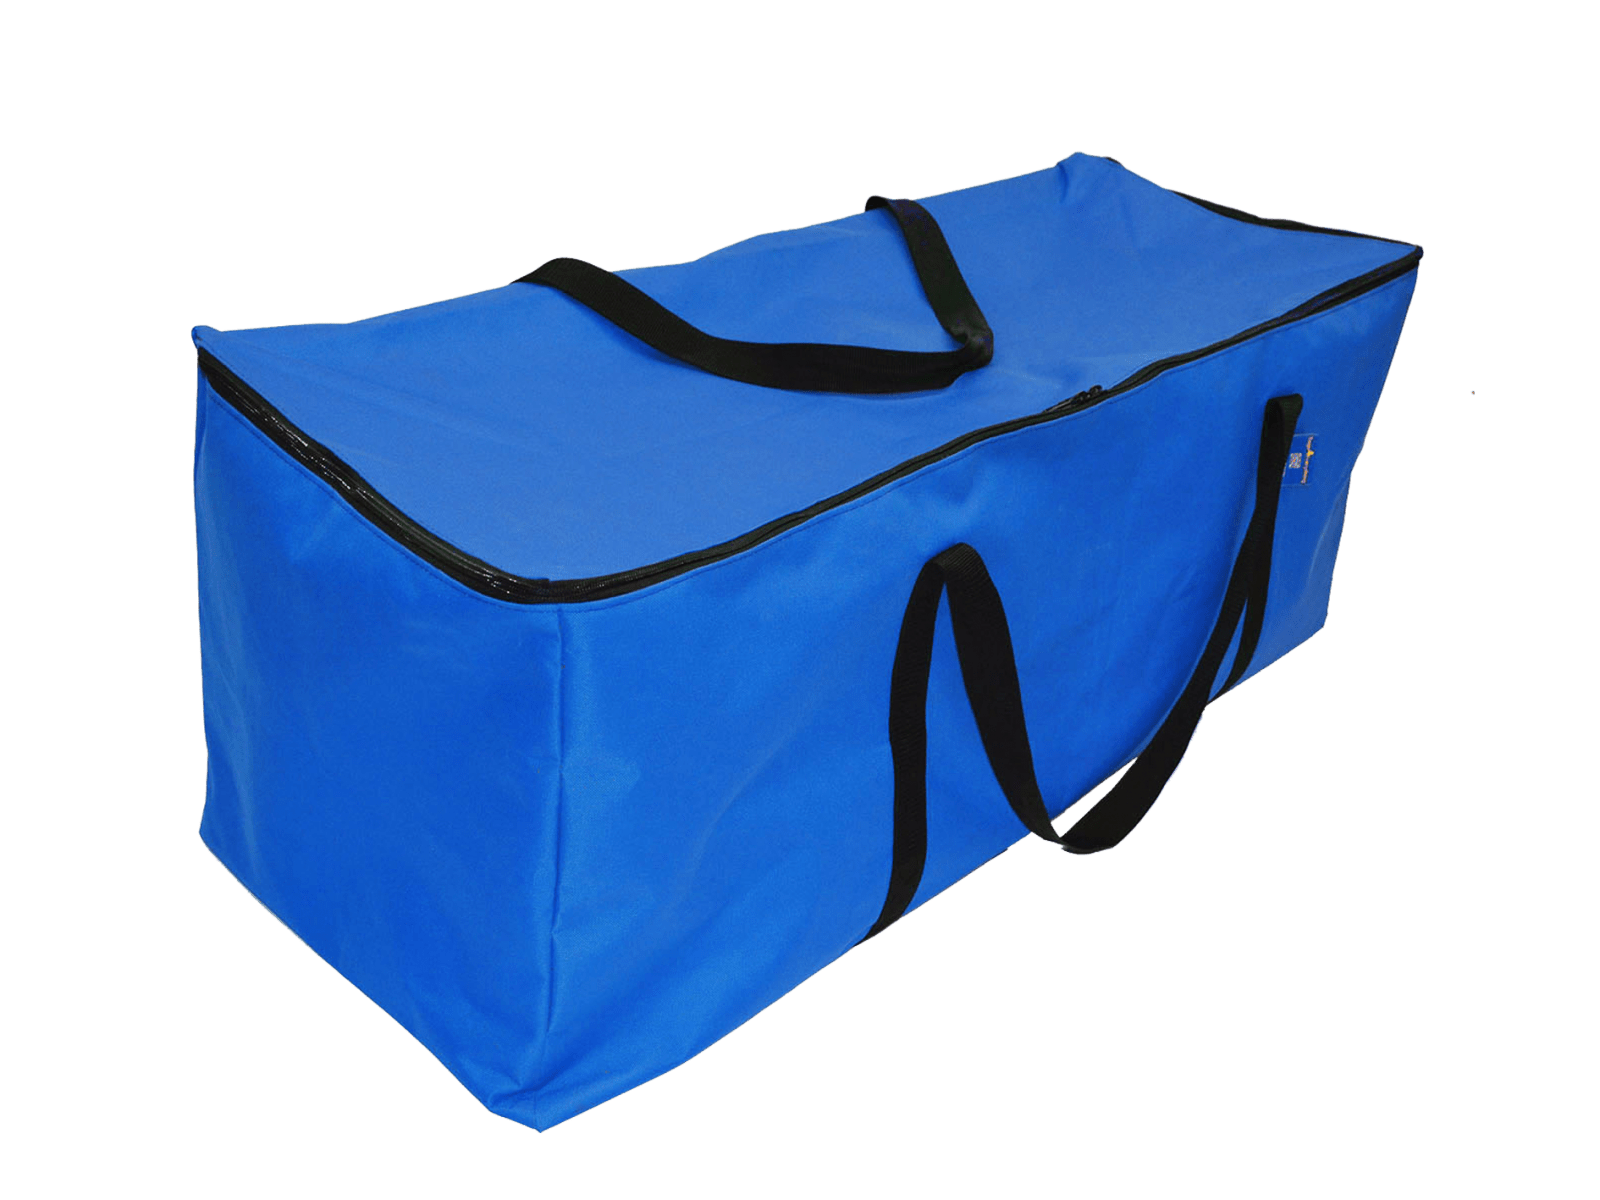 Awning Bag Cover Square End Waterproof With Zip And